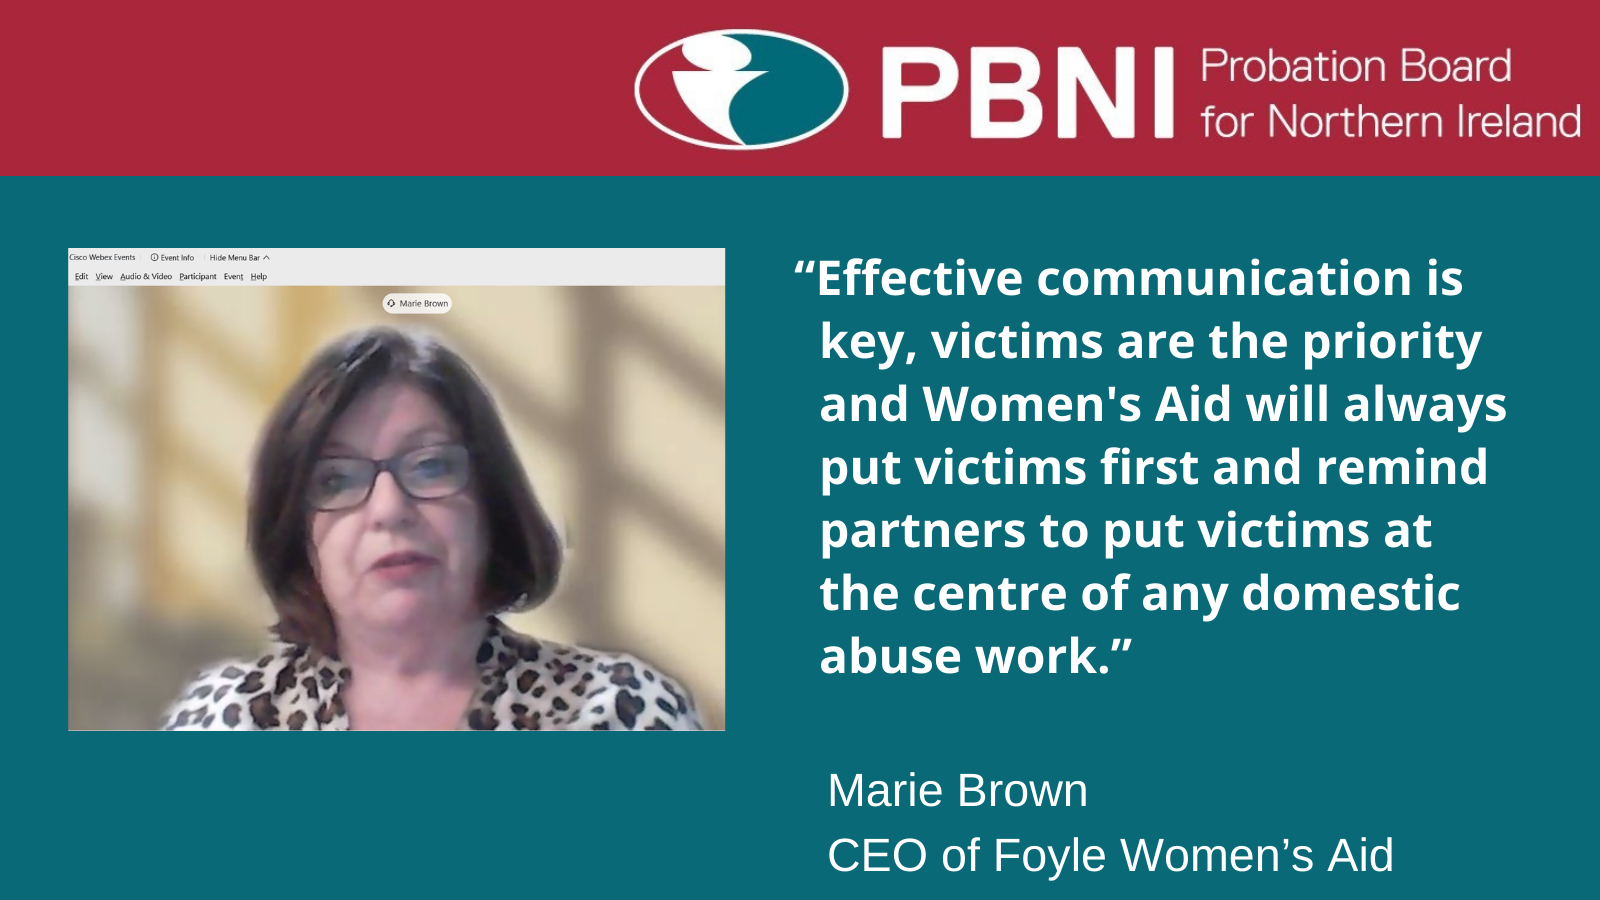 Marie Brown, Foyle Women's Aid Chief Executive, said